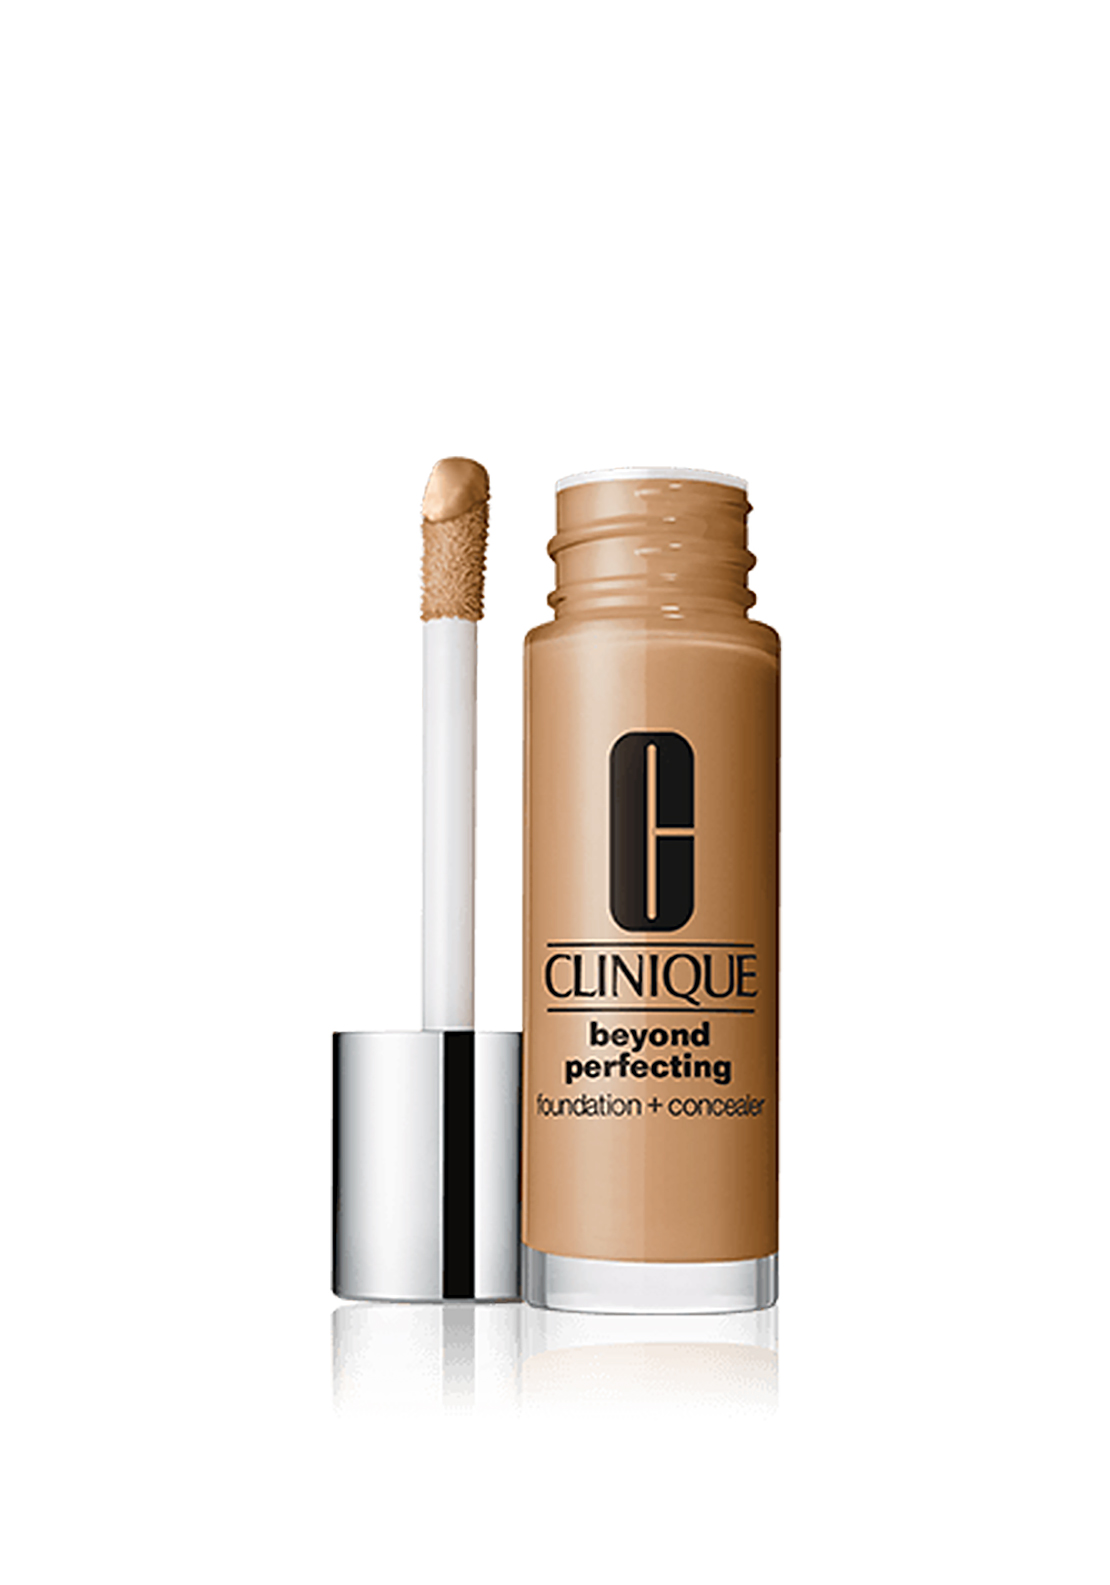 Clinique Beyond Perfecting ™ Foundation and Concealer, Sand